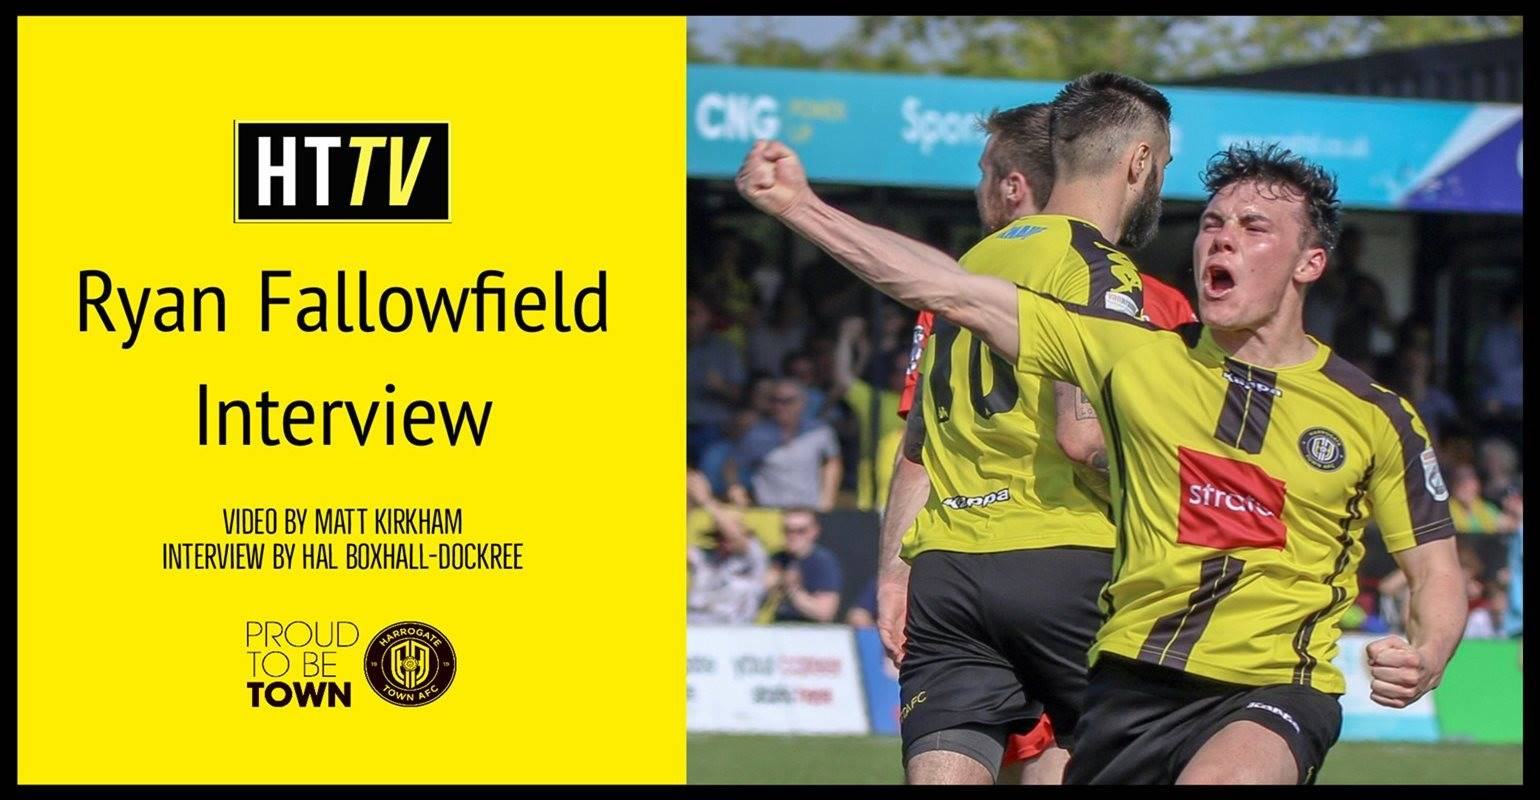 HTTV | Ryan Fallowfield Interview